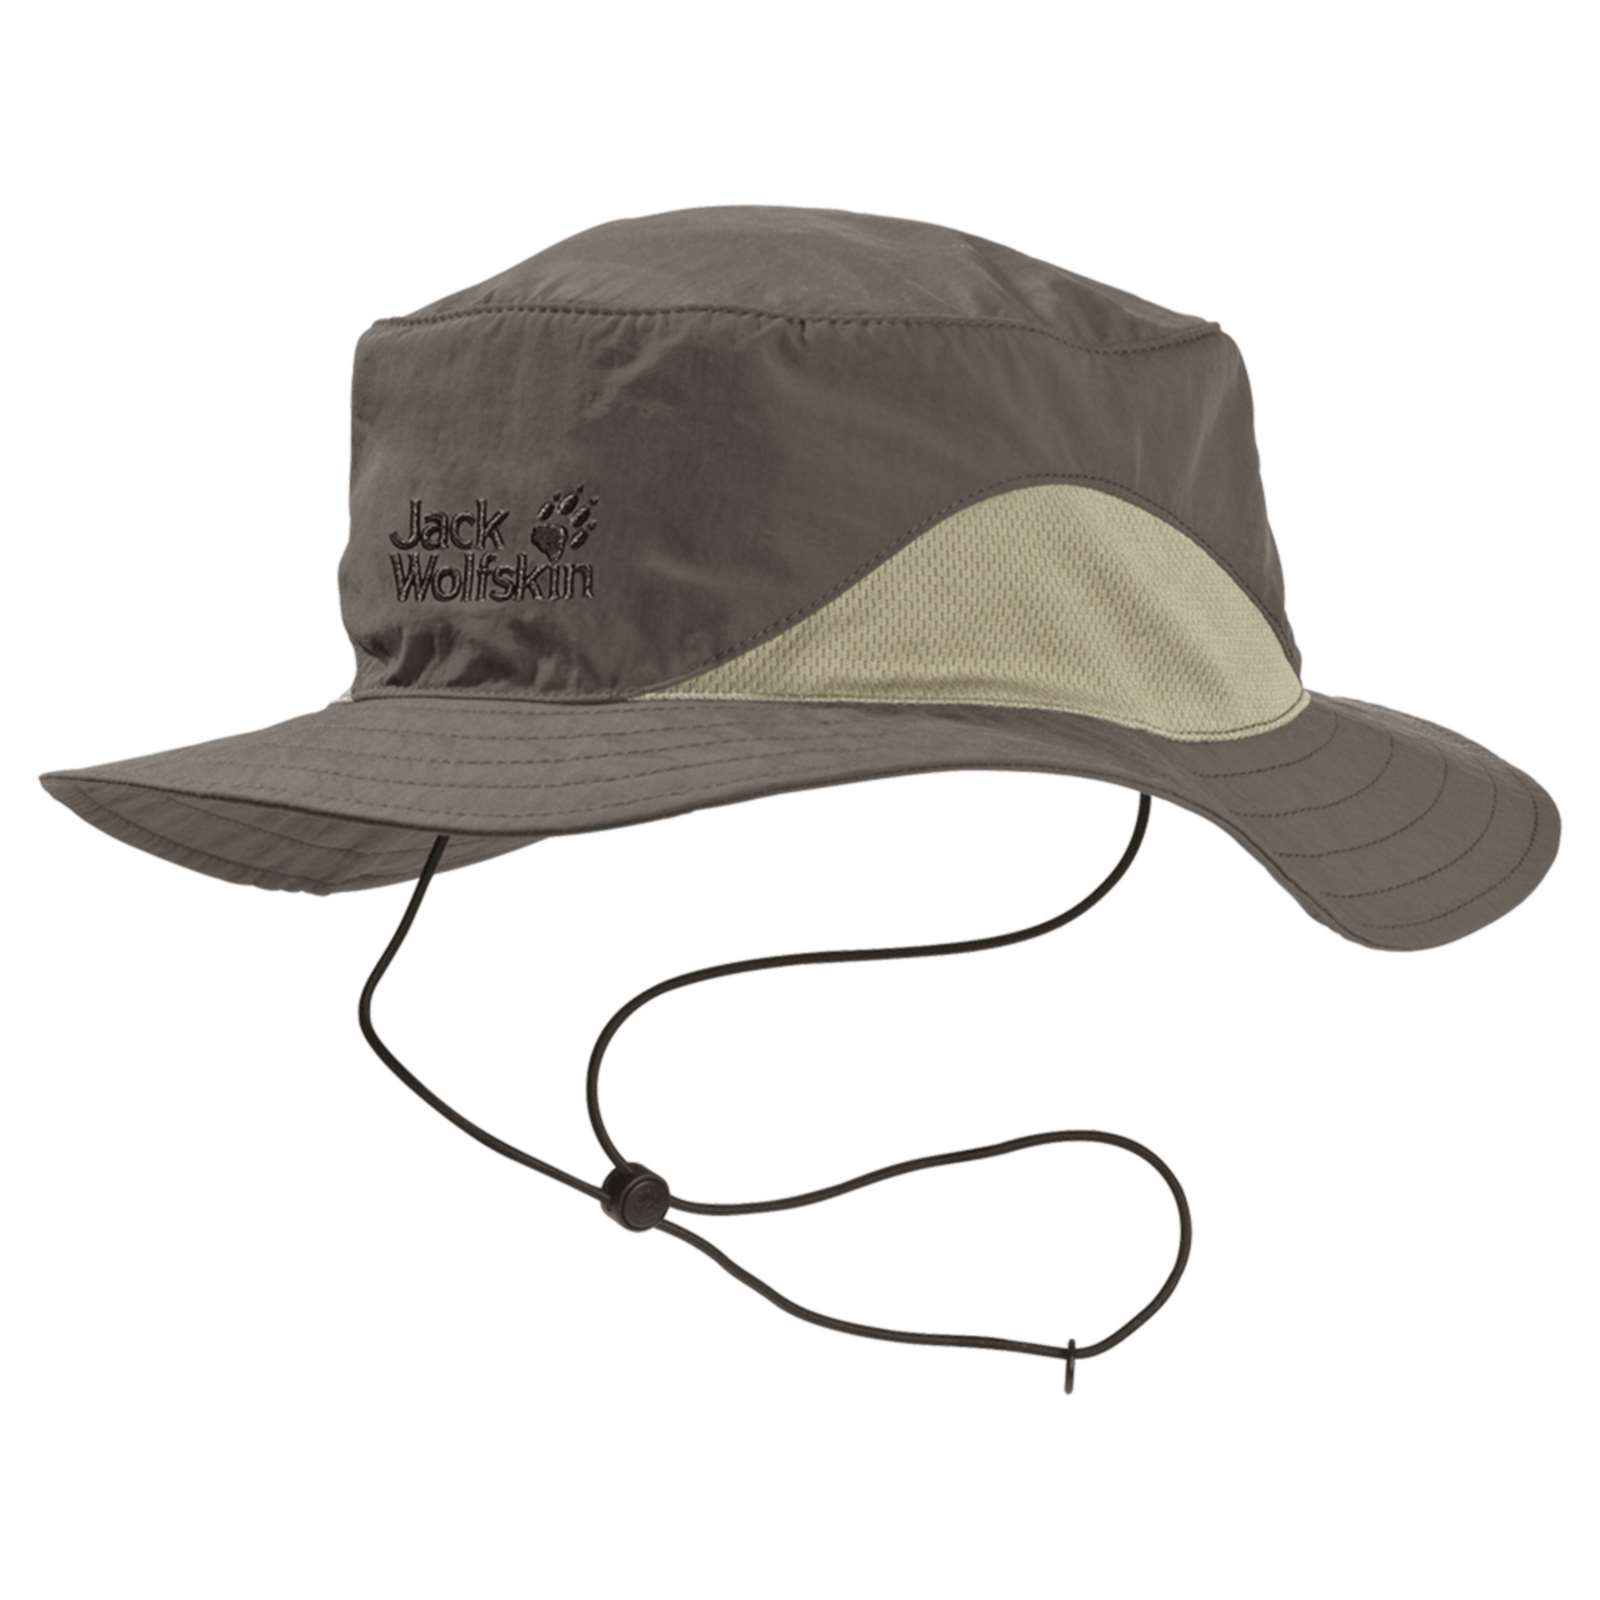 Buy Jack Wolfskin Supplex Vent Hat from Outnorth a1a314a4b40